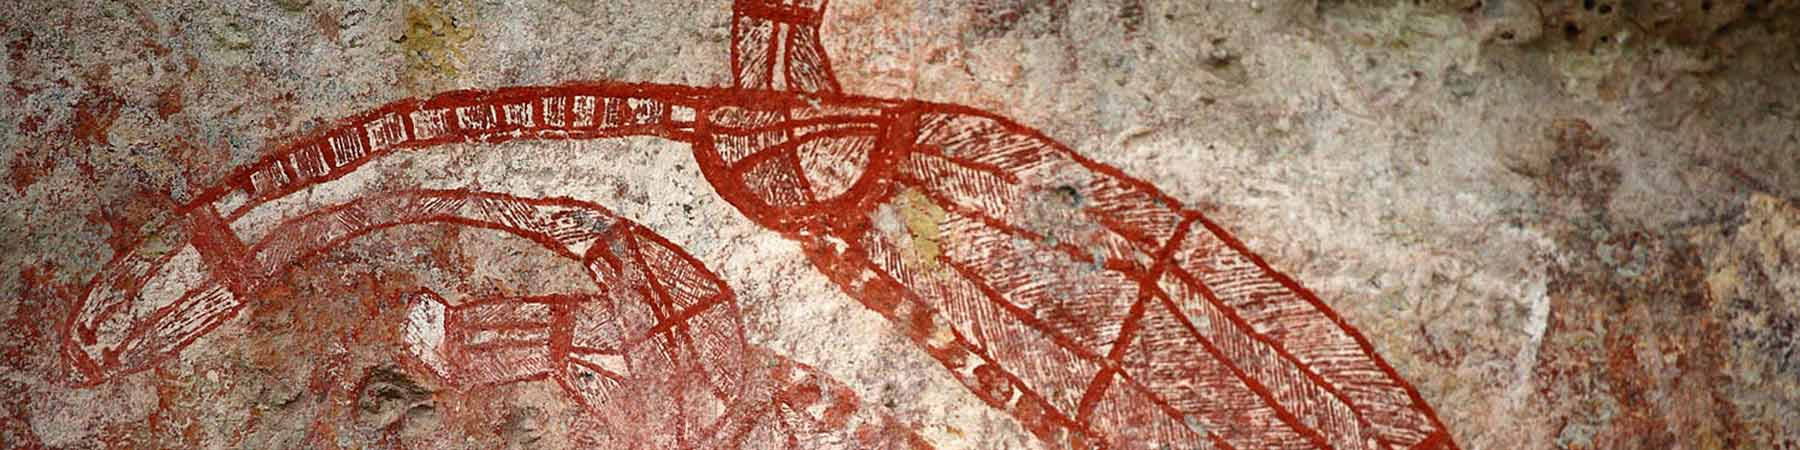 Turtles depicted in rock art paintings